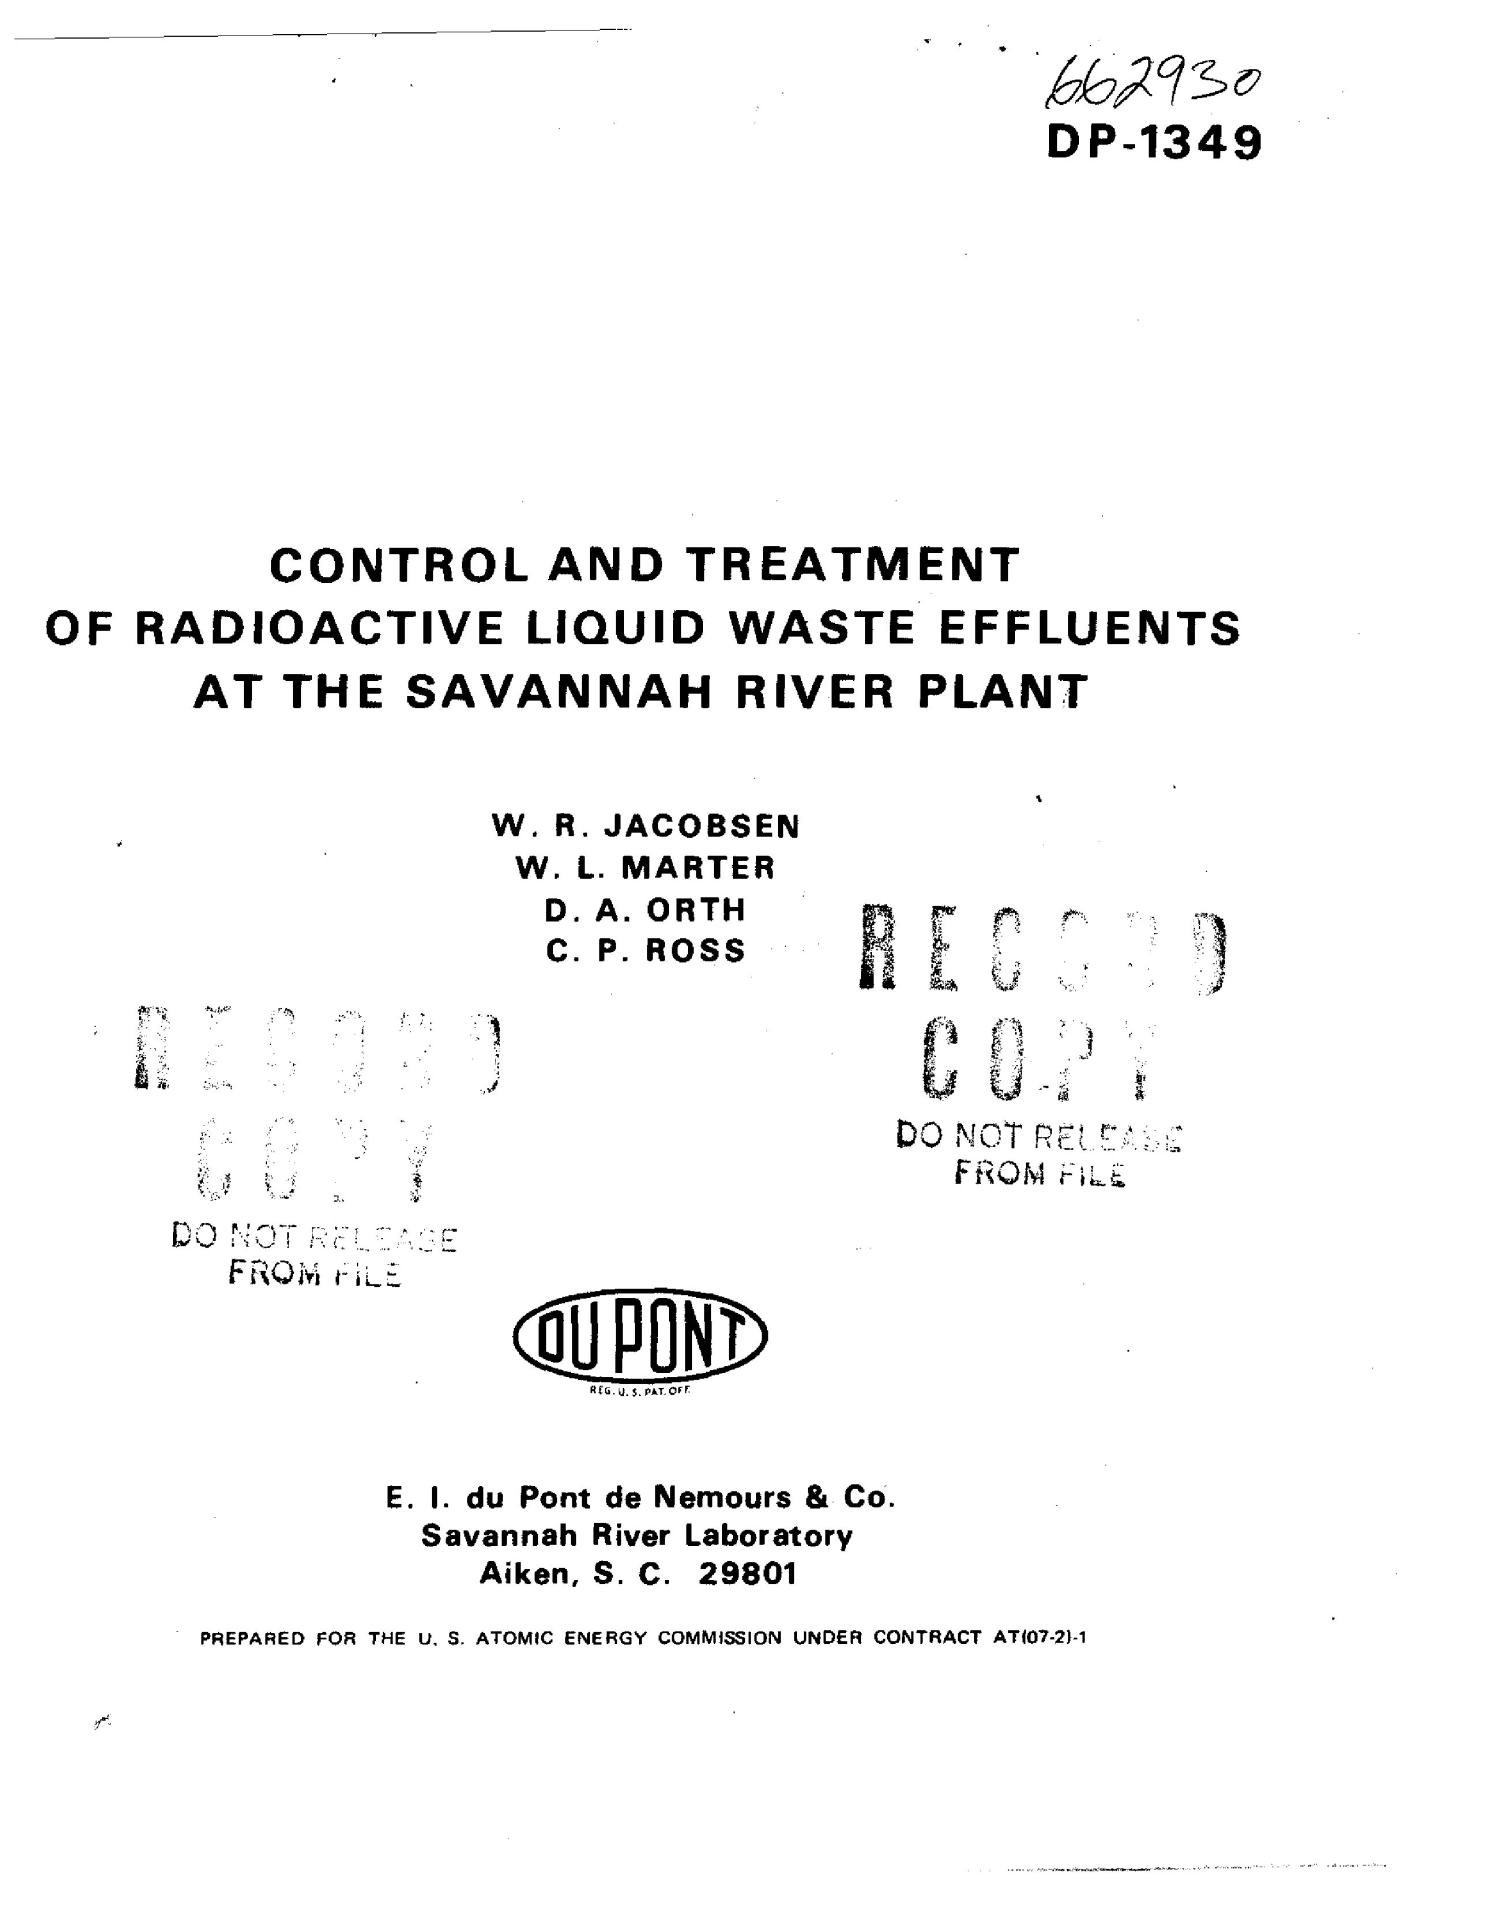 Control and treatment of radioactive liquid waste effluents at the Savannah River Plant                                                                                                      [Sequence #]: 1 of 127